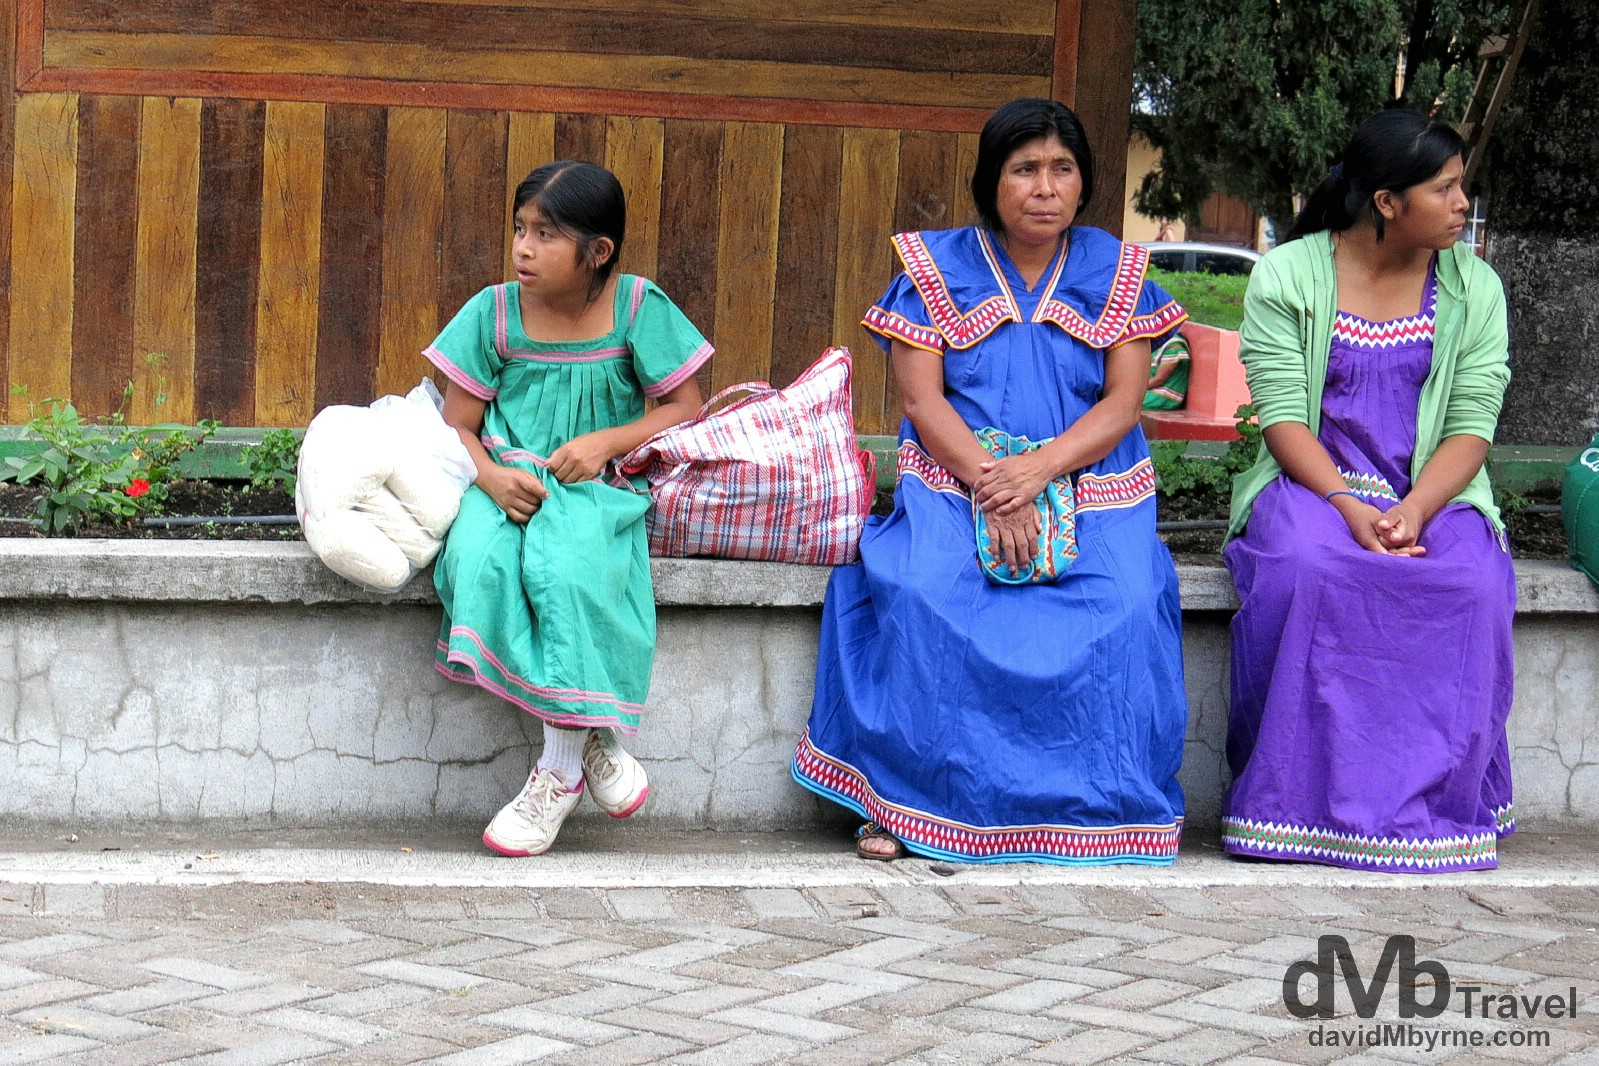 Local villagers in the mountain-valley town of Boquete, Panama. June 29th 2013.